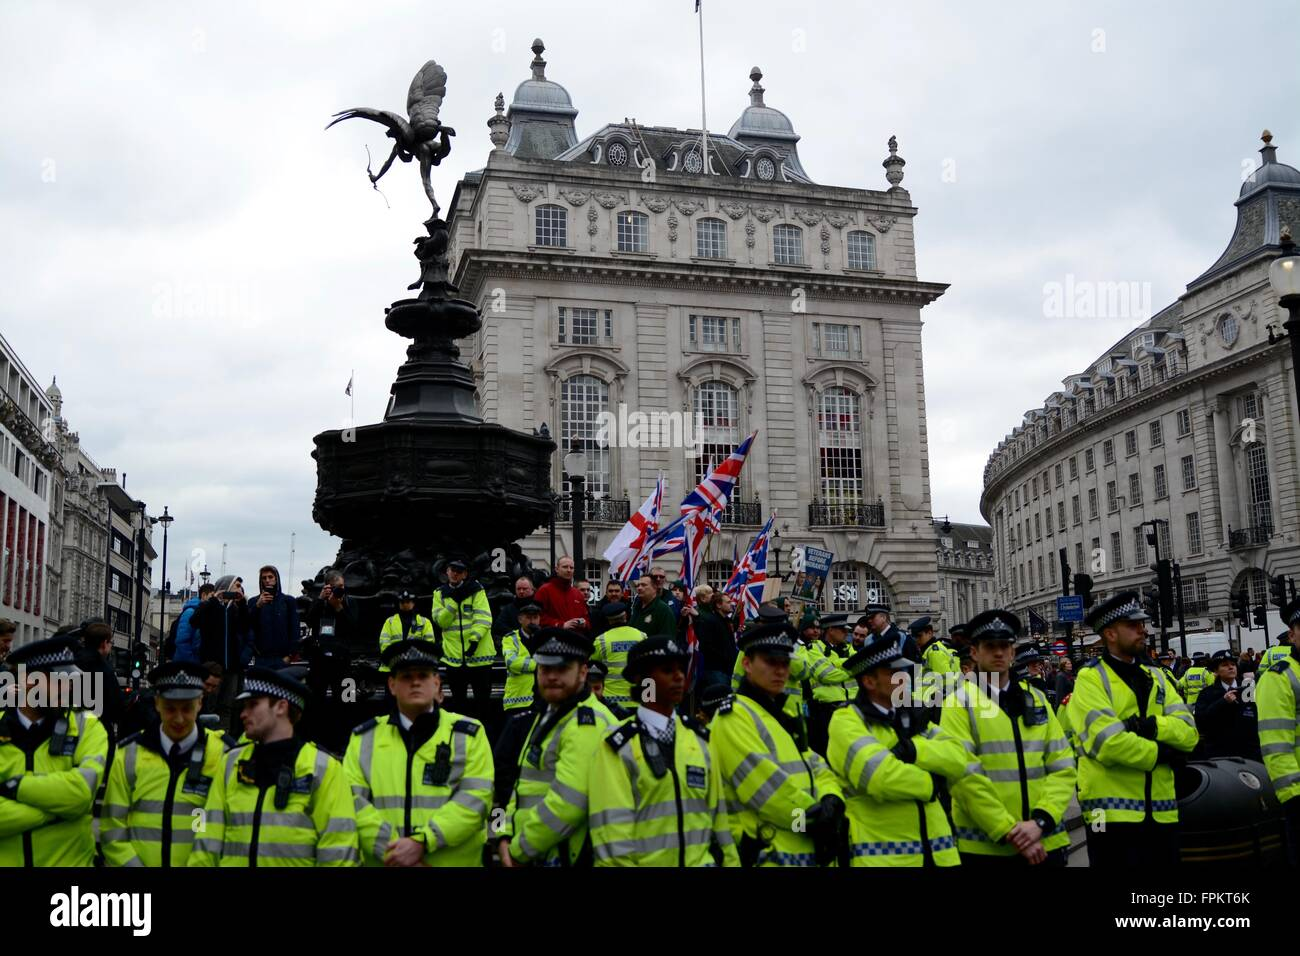 London, UK. March 19th 2016. Police hodlding their lines between Britain First and anti-Fascist organisations in - Stock Image